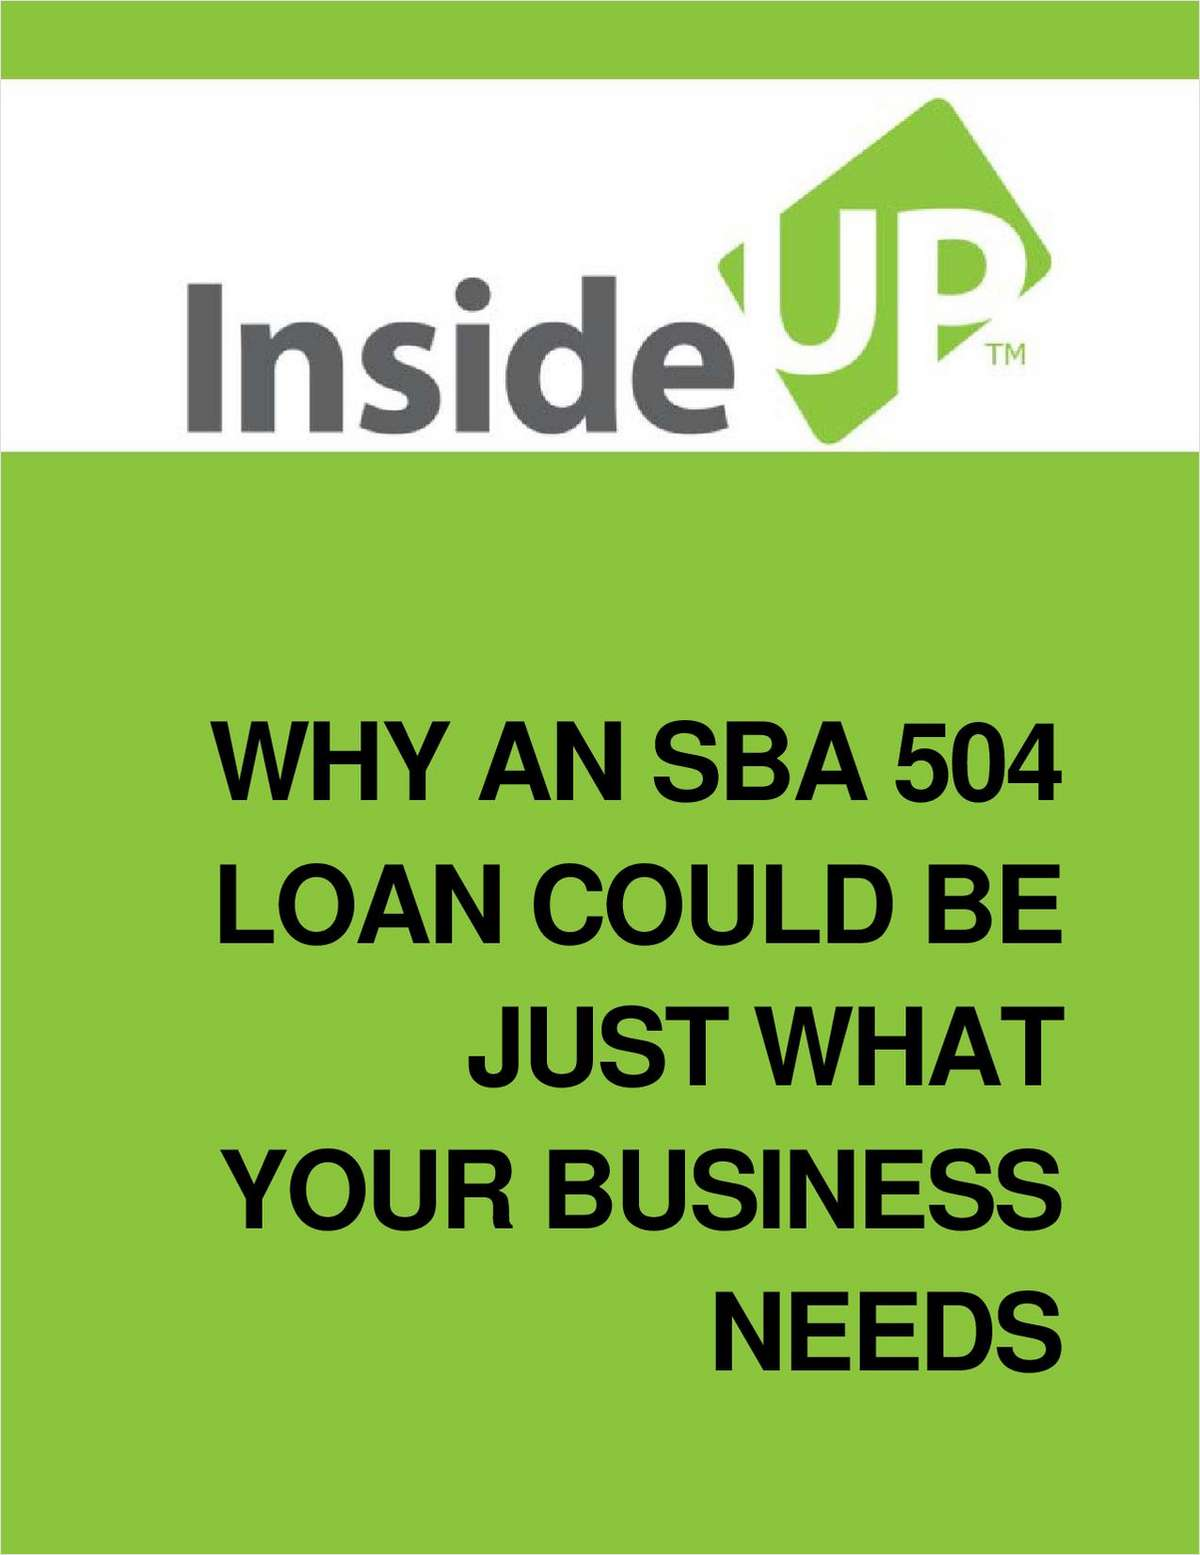 Why an SBA 504 Loan Could Be Just What Your Business Needs